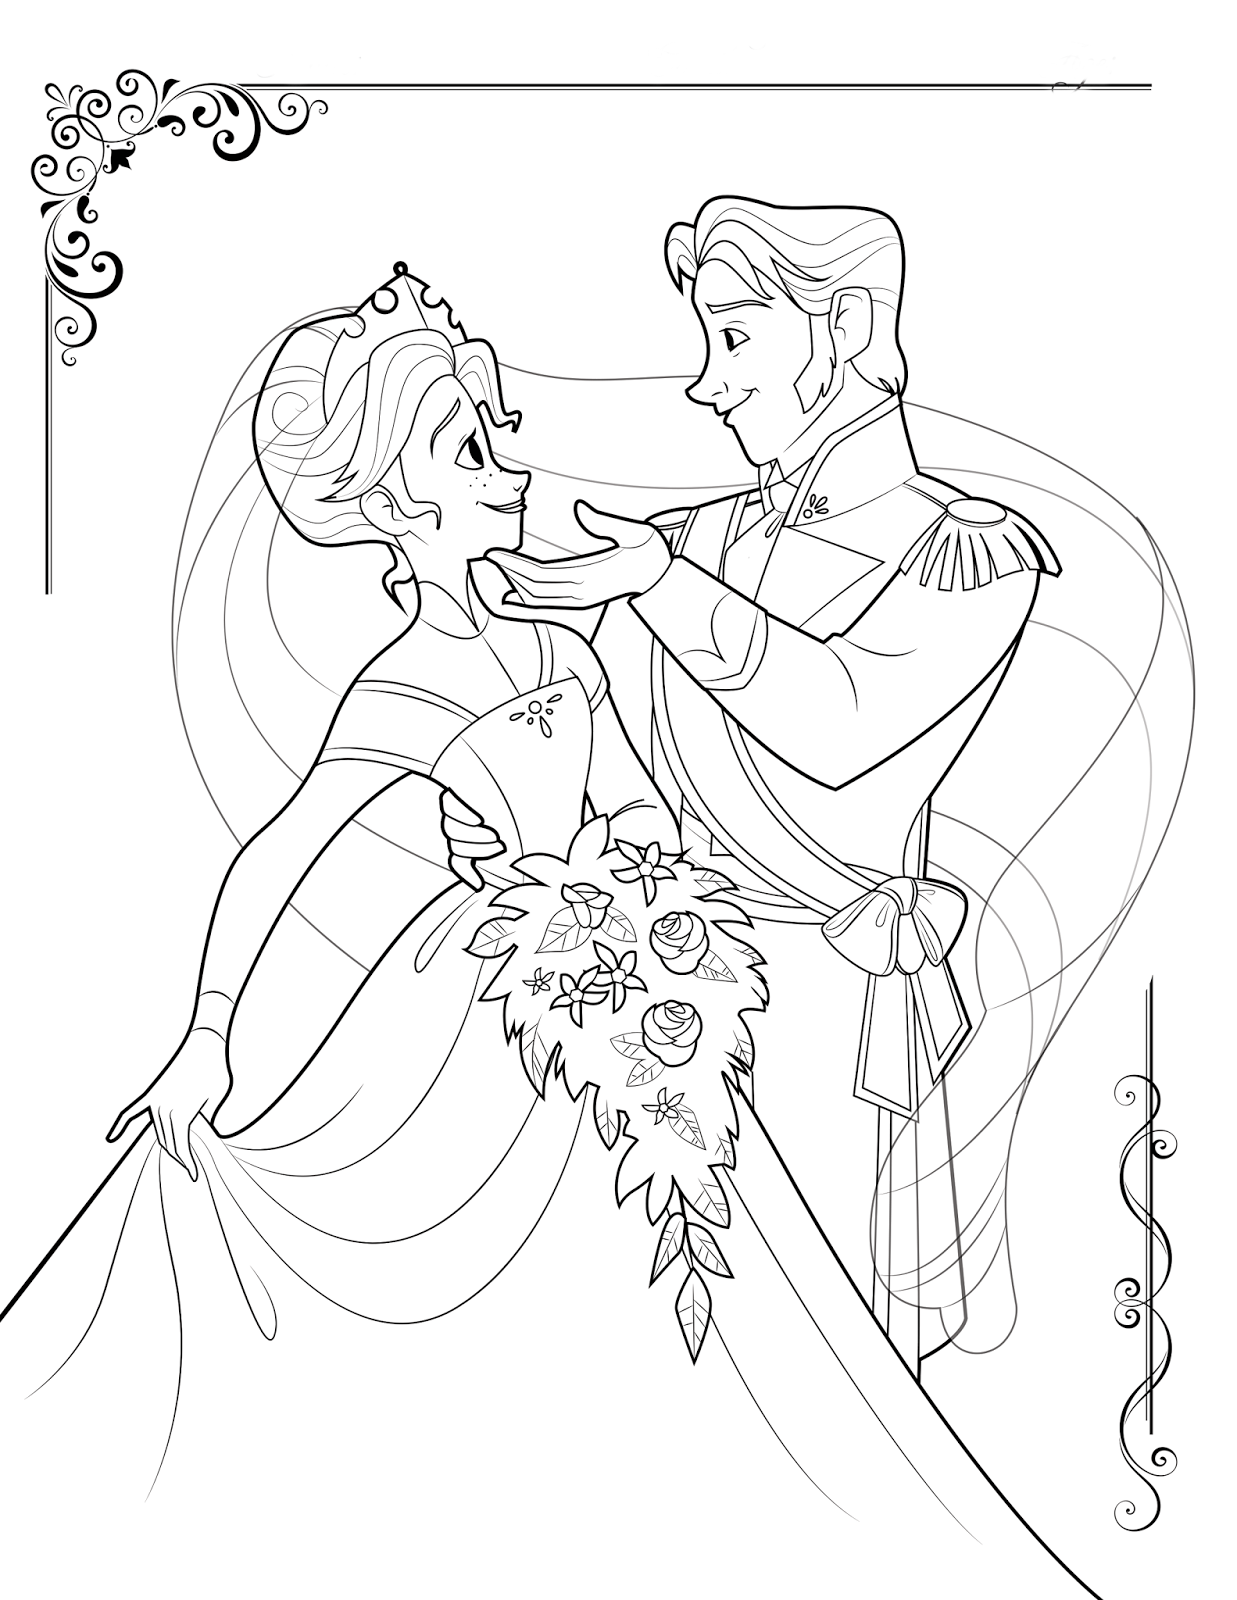 free printable frozen coloring pages free printable frozen coloring pages for kids best coloring frozen printable free pages